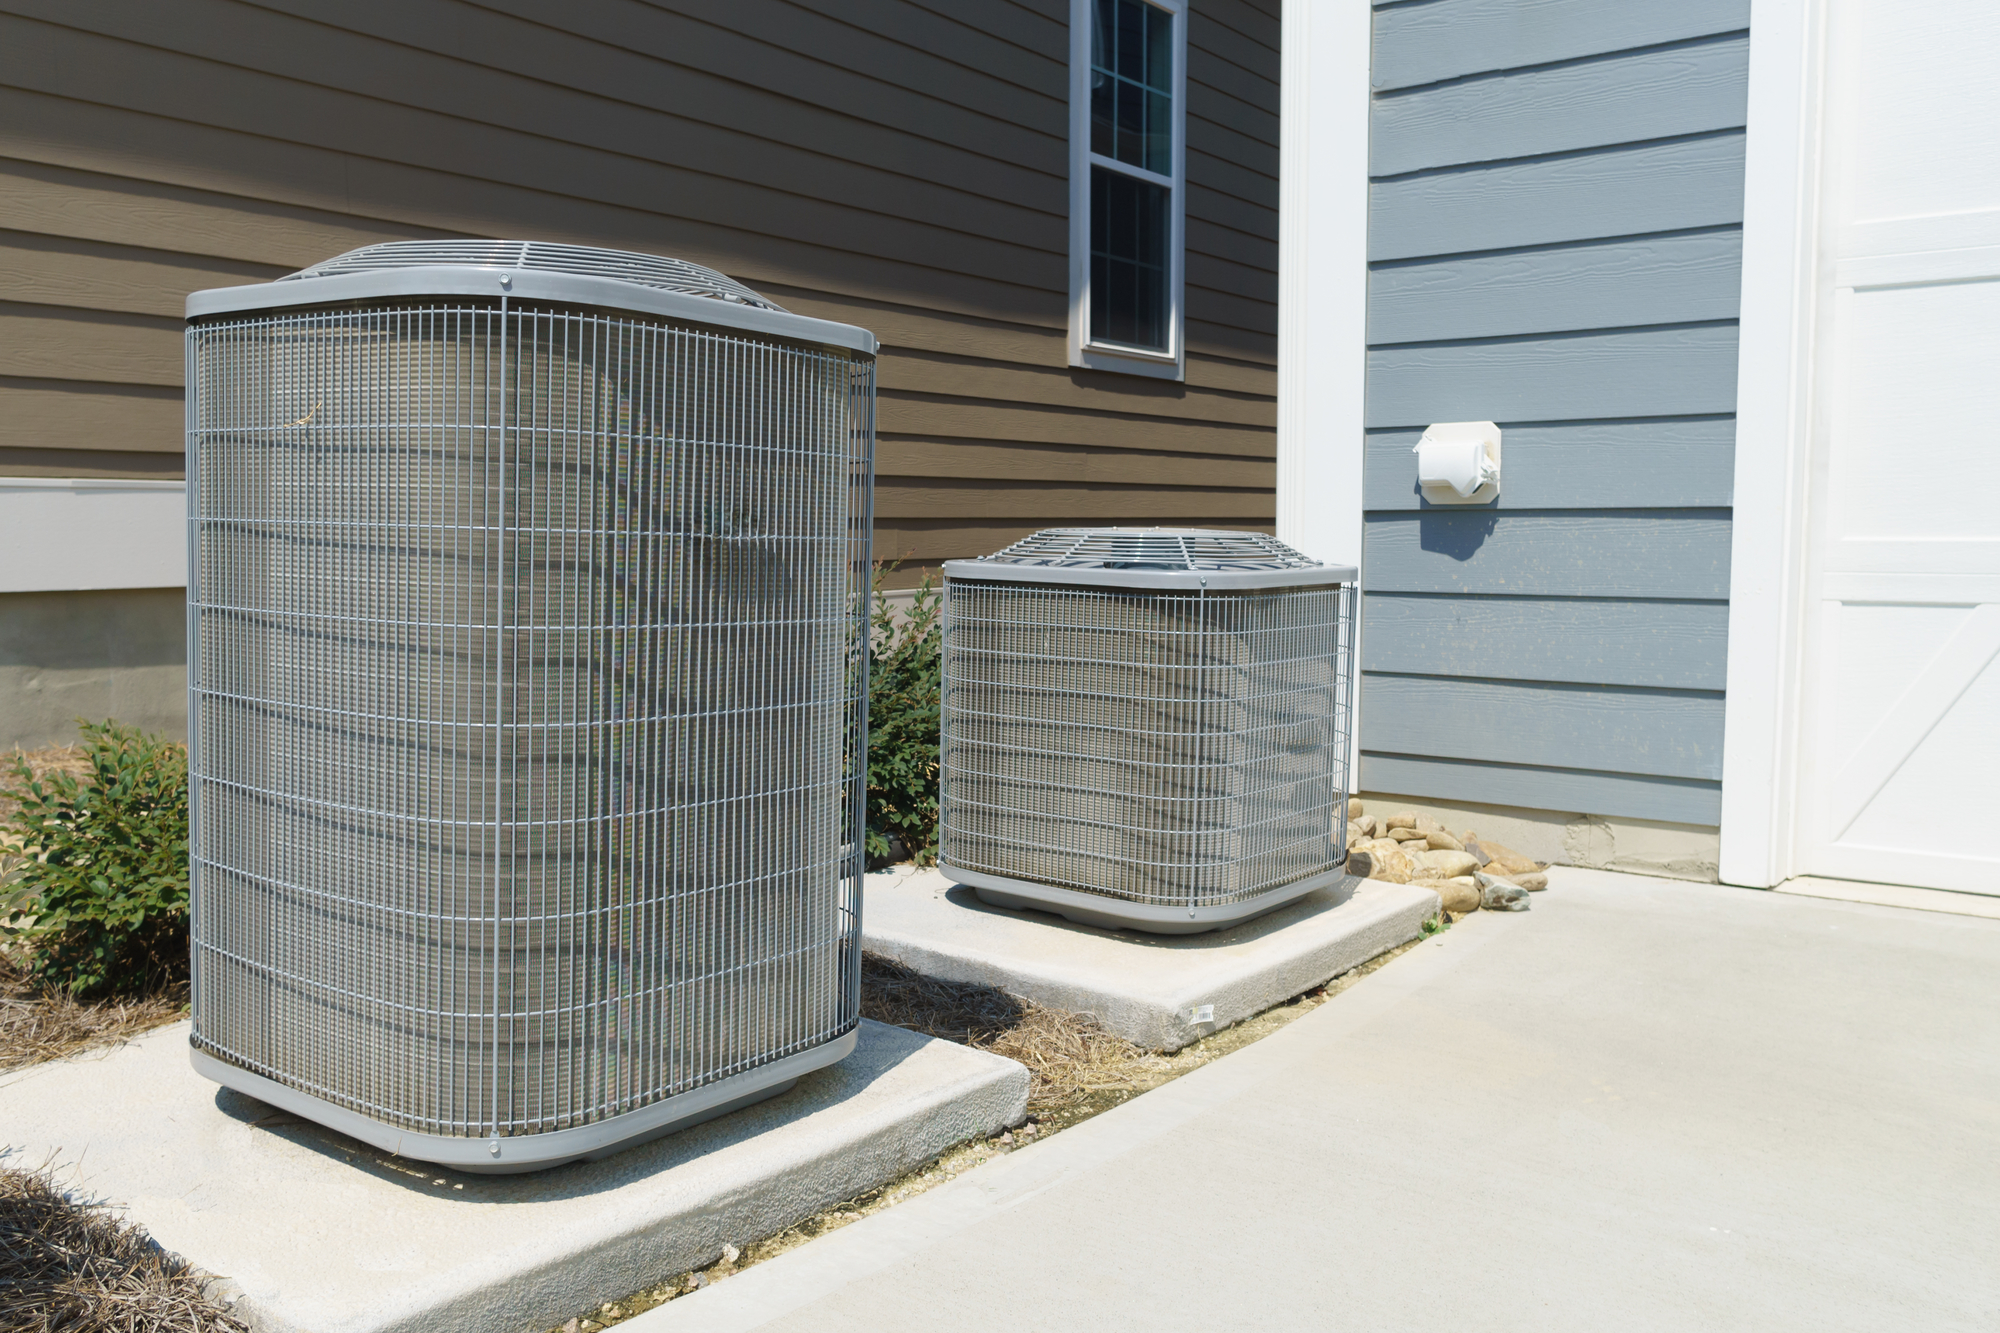 A/C size matters image